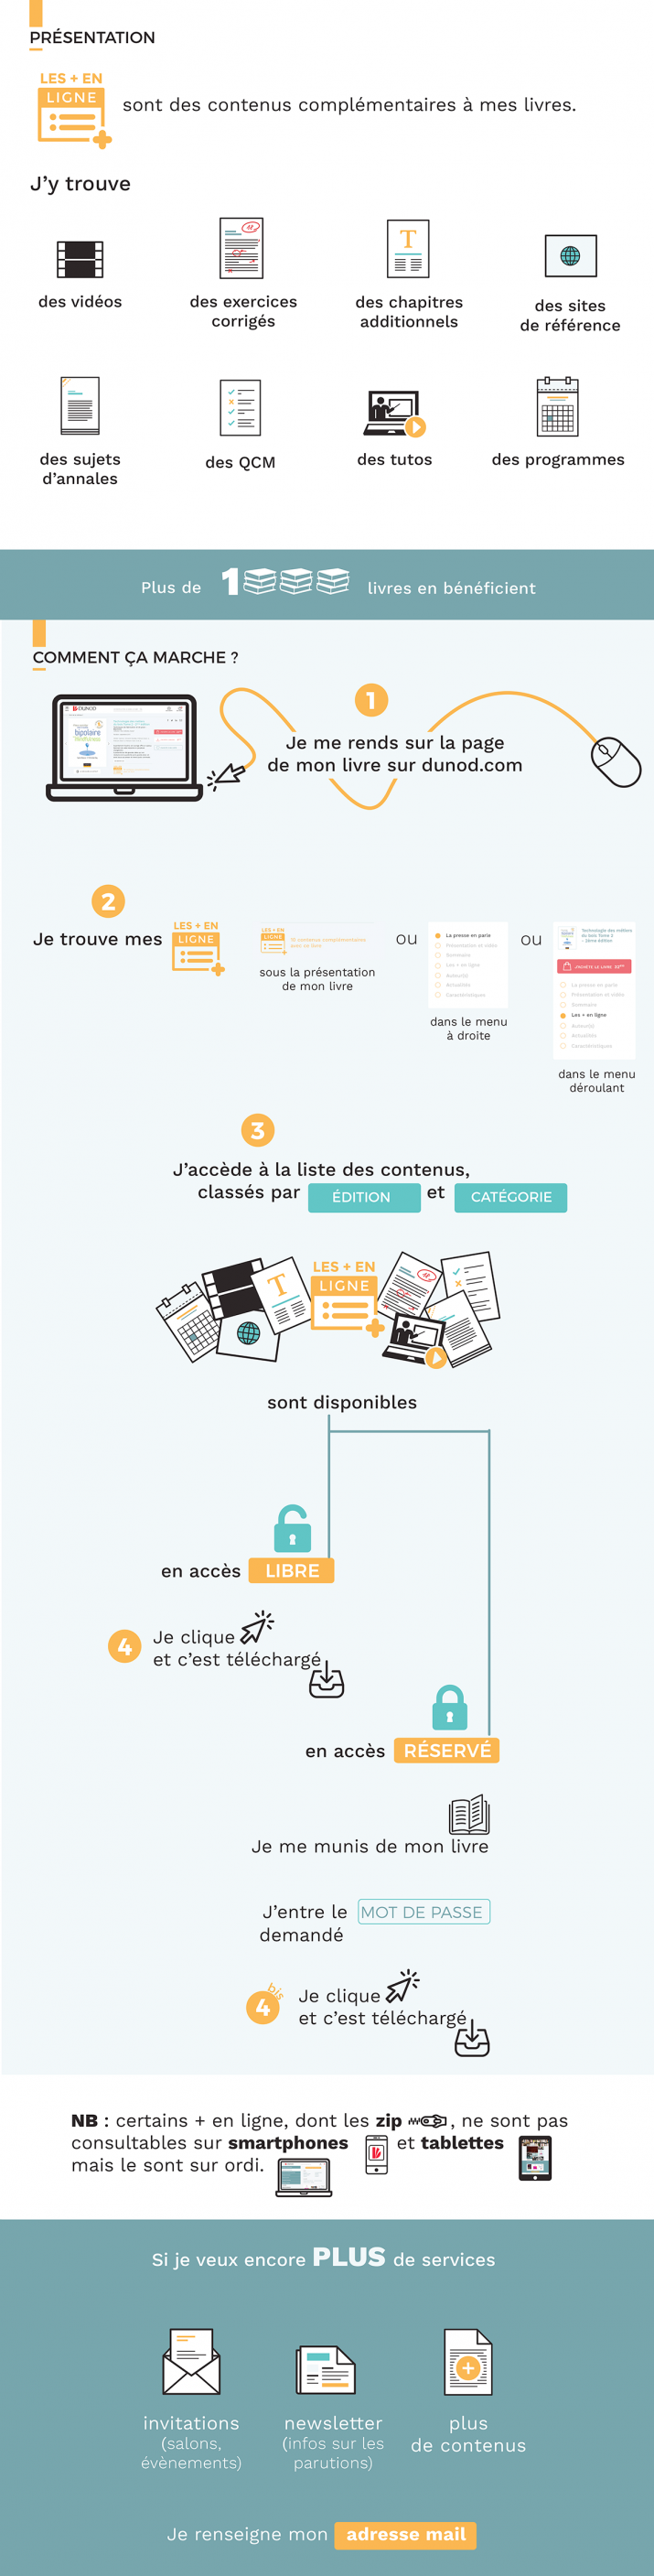 infographies-site-d-v3-24-1200px.png